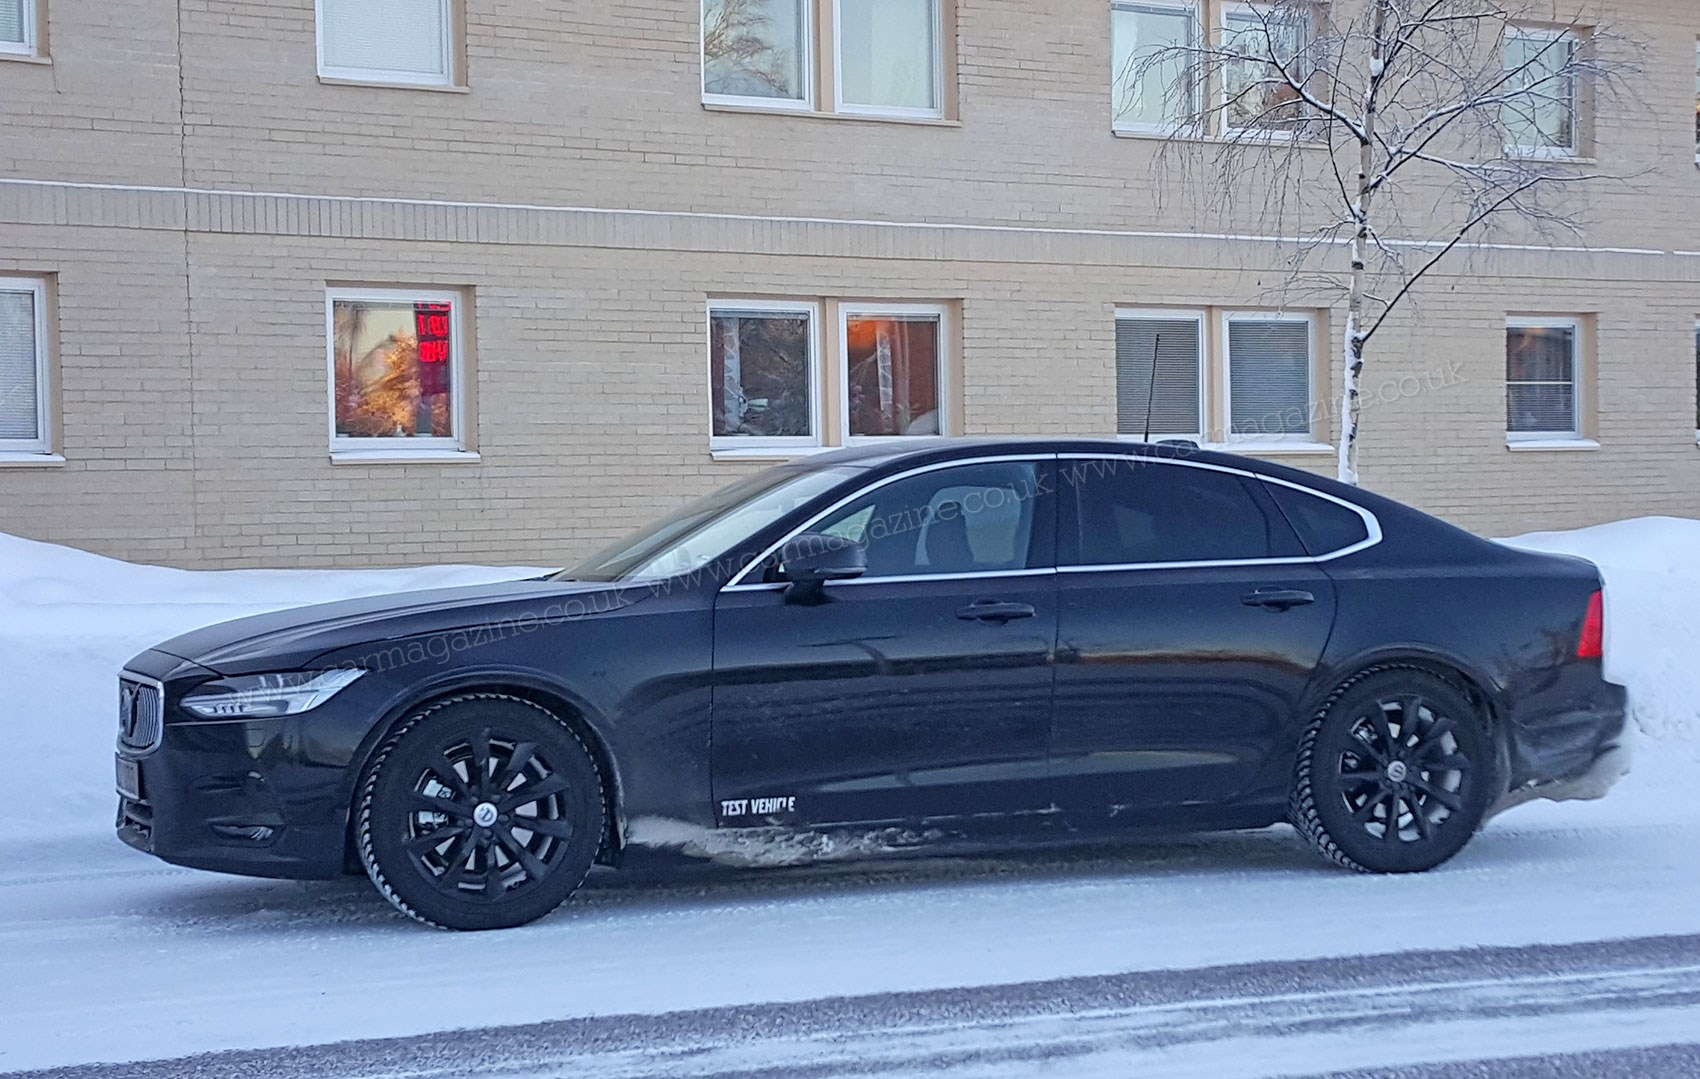 Volvo s90 the beefier 2016 r design steps out by car magazine and scoopsfoglights a telltale new volvo s90 takes over where unloved s80 left off sciox Choice Image